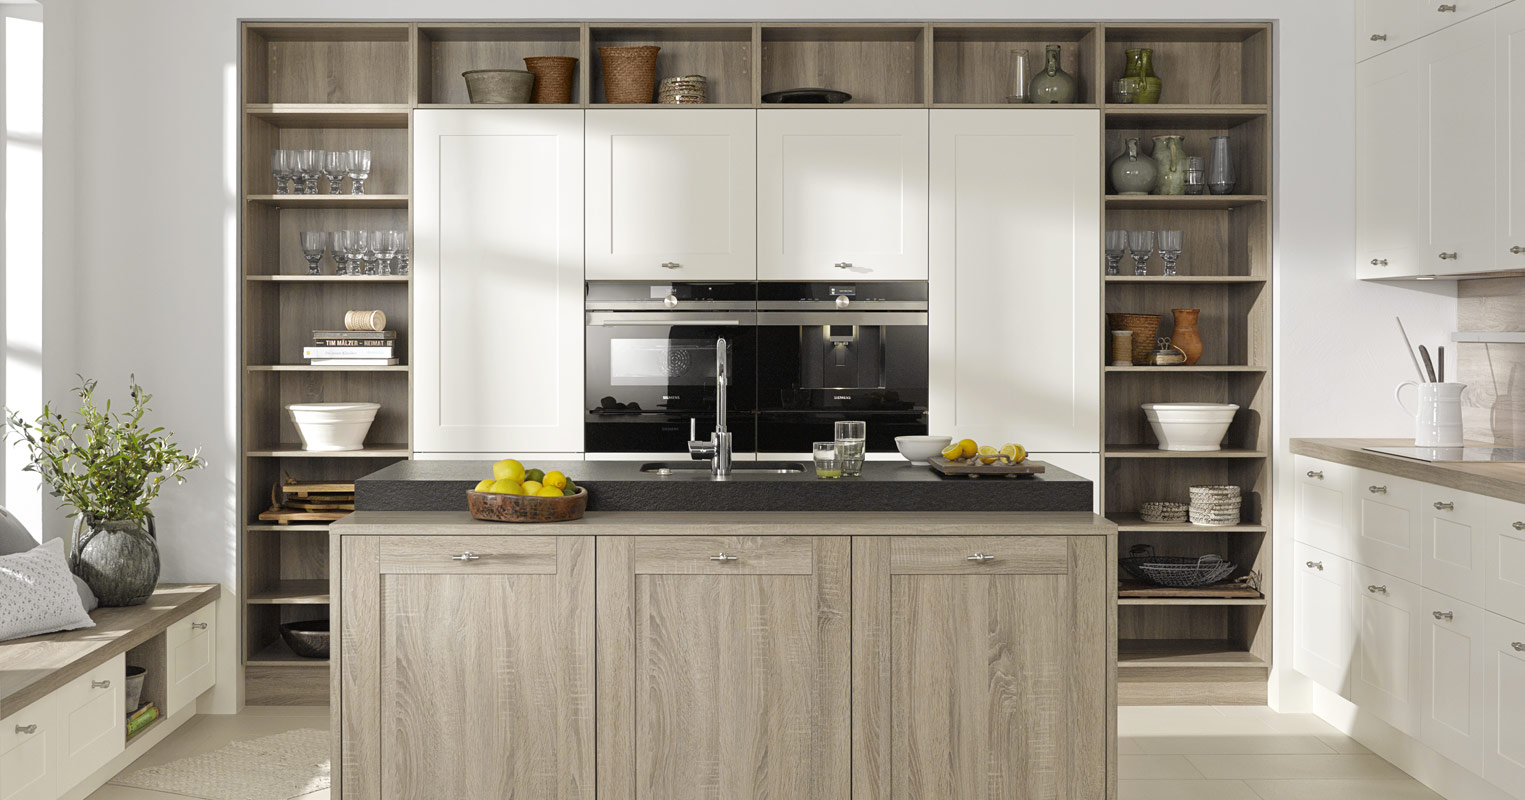 Appliances are fully guaranteed from the date of purchase when registered with the manufacturer.